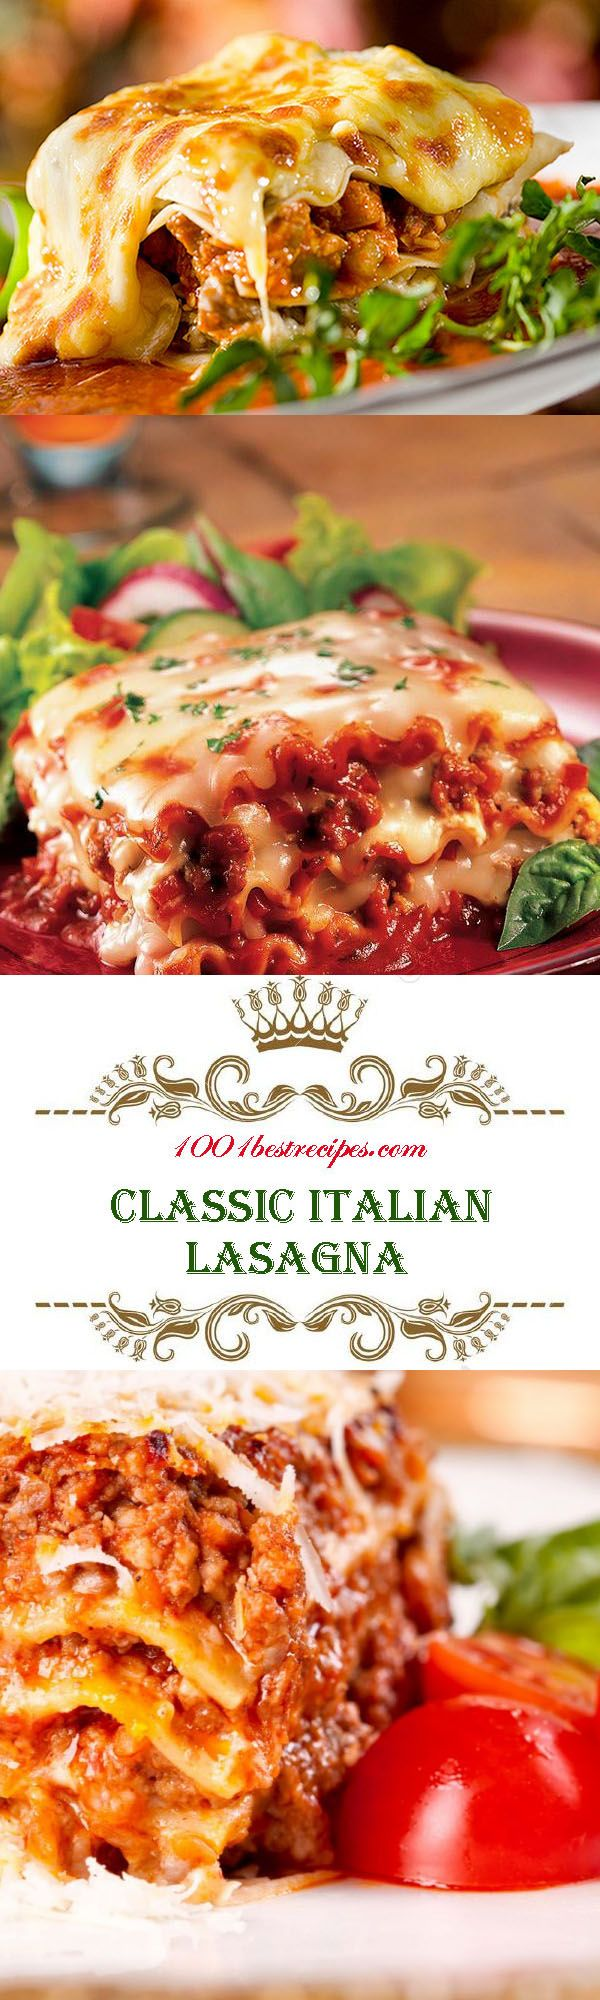 Classic Italian Lasagna. Classic Italian Lasagna - amazingly delicious Italian dish recognized throughout the world. Very satisfying, made from layers of dough and layers of meat or vegetable stuffing, with bechamel sauce. Ingredients: 600 g minced meat, 600 g Bolognese Sauce, 750 ml milk, 500 g hard cheese, 60 g butter,  2.5 tablespoons wheat flour, 2 tablespoons sunflower oil, 10 pieces sheets of lasagna (ready, dry). #1001bestrecipes #recipes #food #lasagna #italian